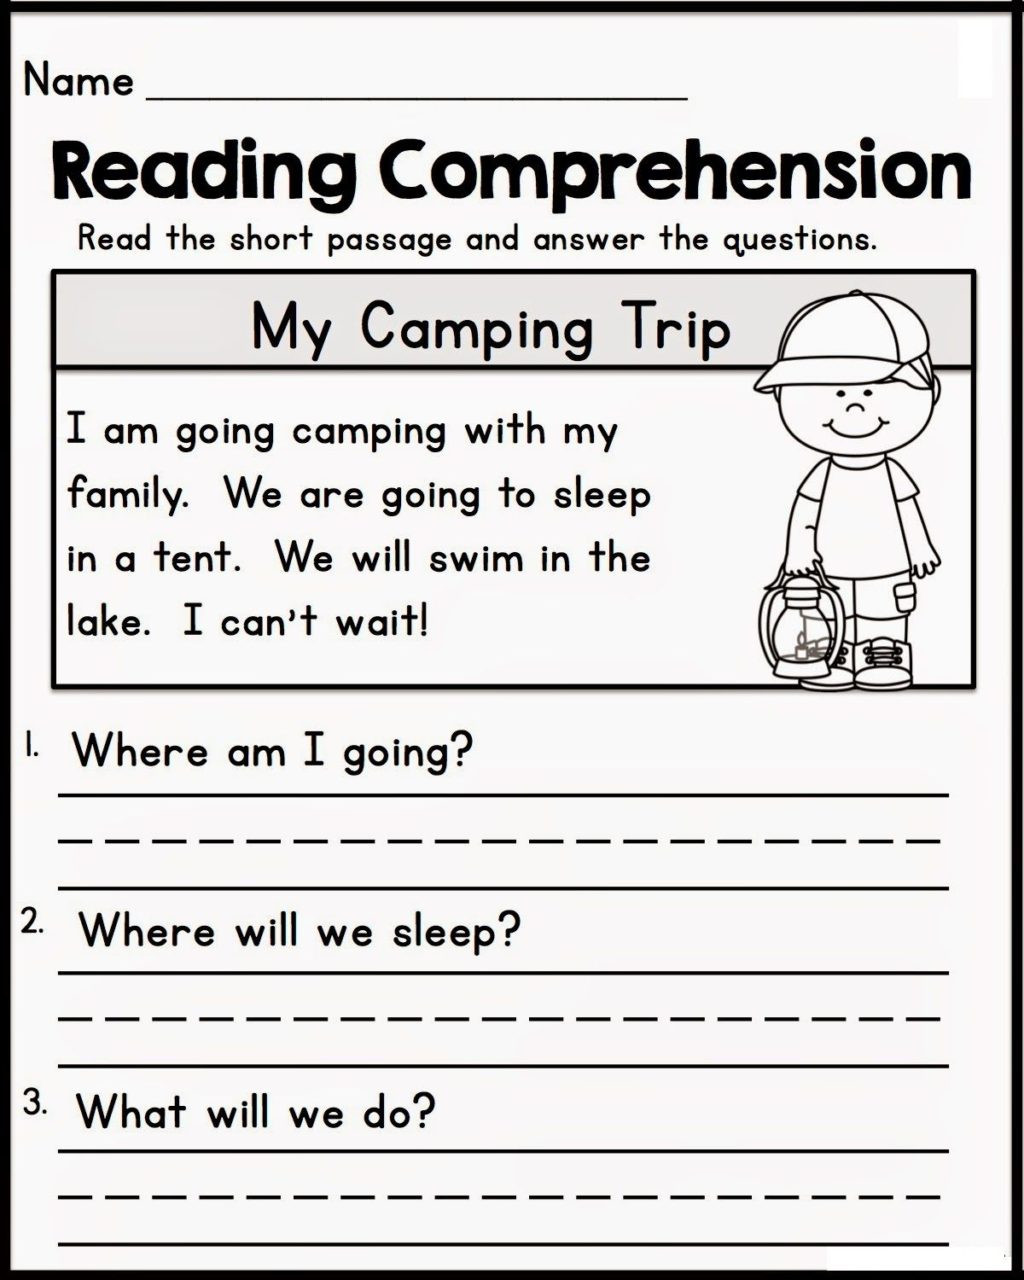 Social Studies Worksheets 2nd Grade Worksheet Free Printables for 1st Grade Worksheets Kids